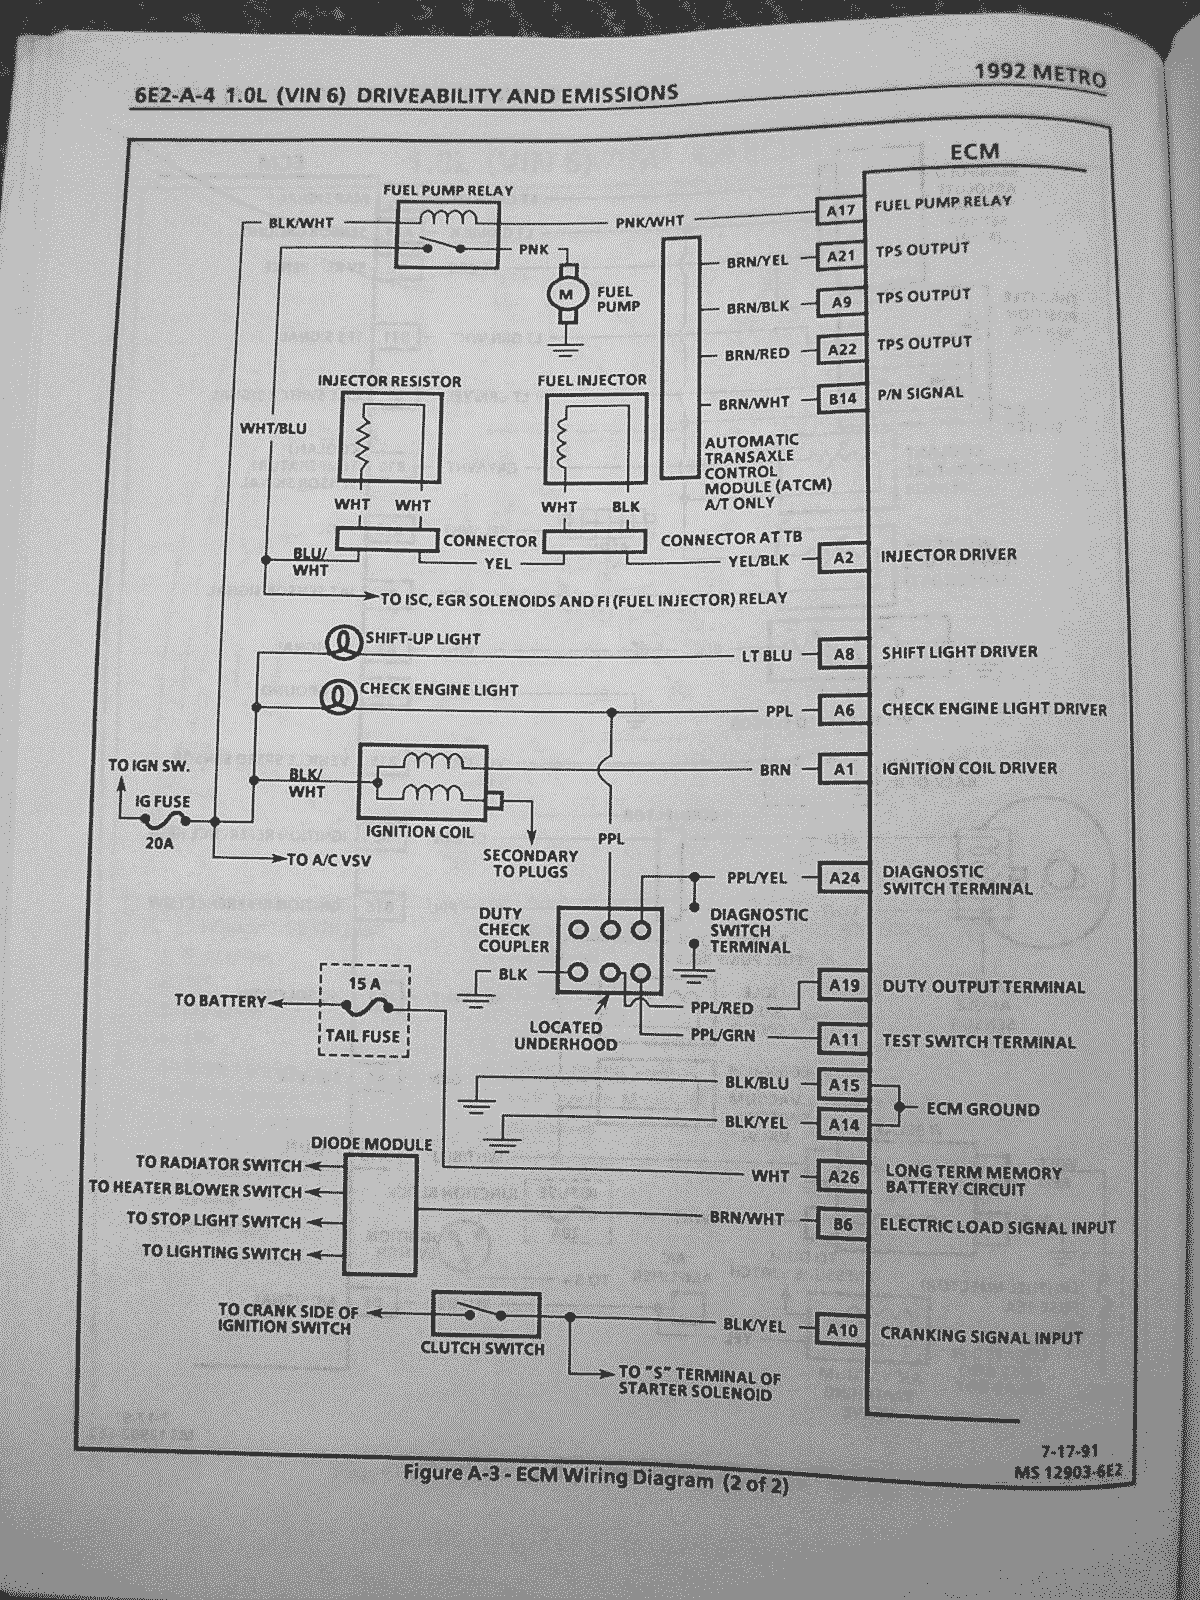 6e2 a 4 geo metro and suzuki swift wiring diagrams metroxfi com suzuki swift 2007 stereo wiring diagram at crackthecode.co